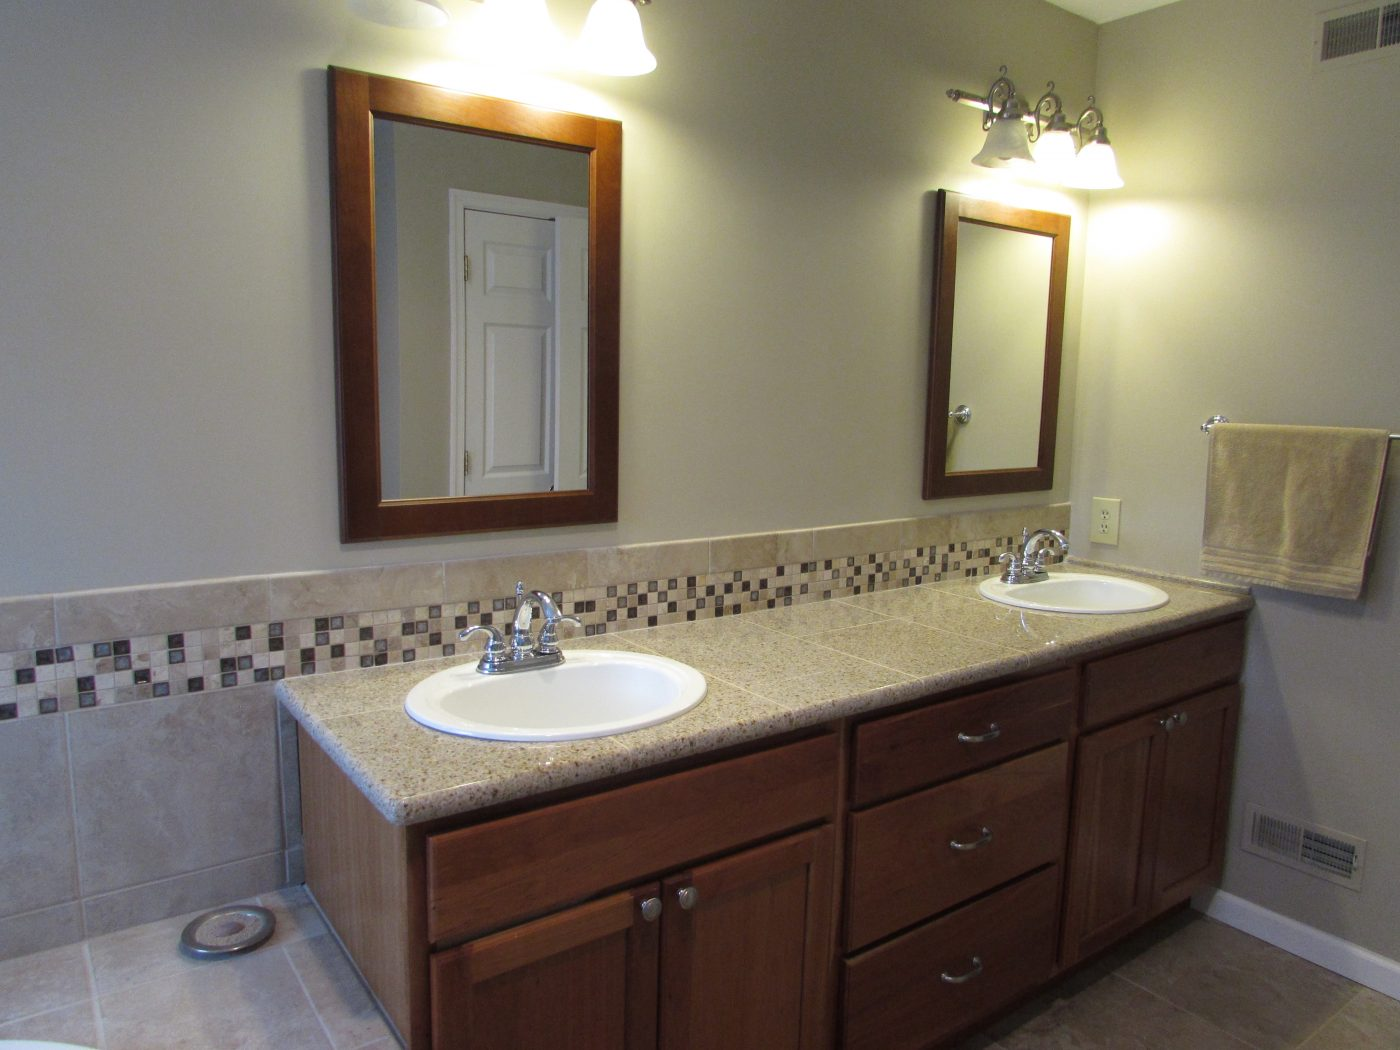 Coatesville_Bathroom_2